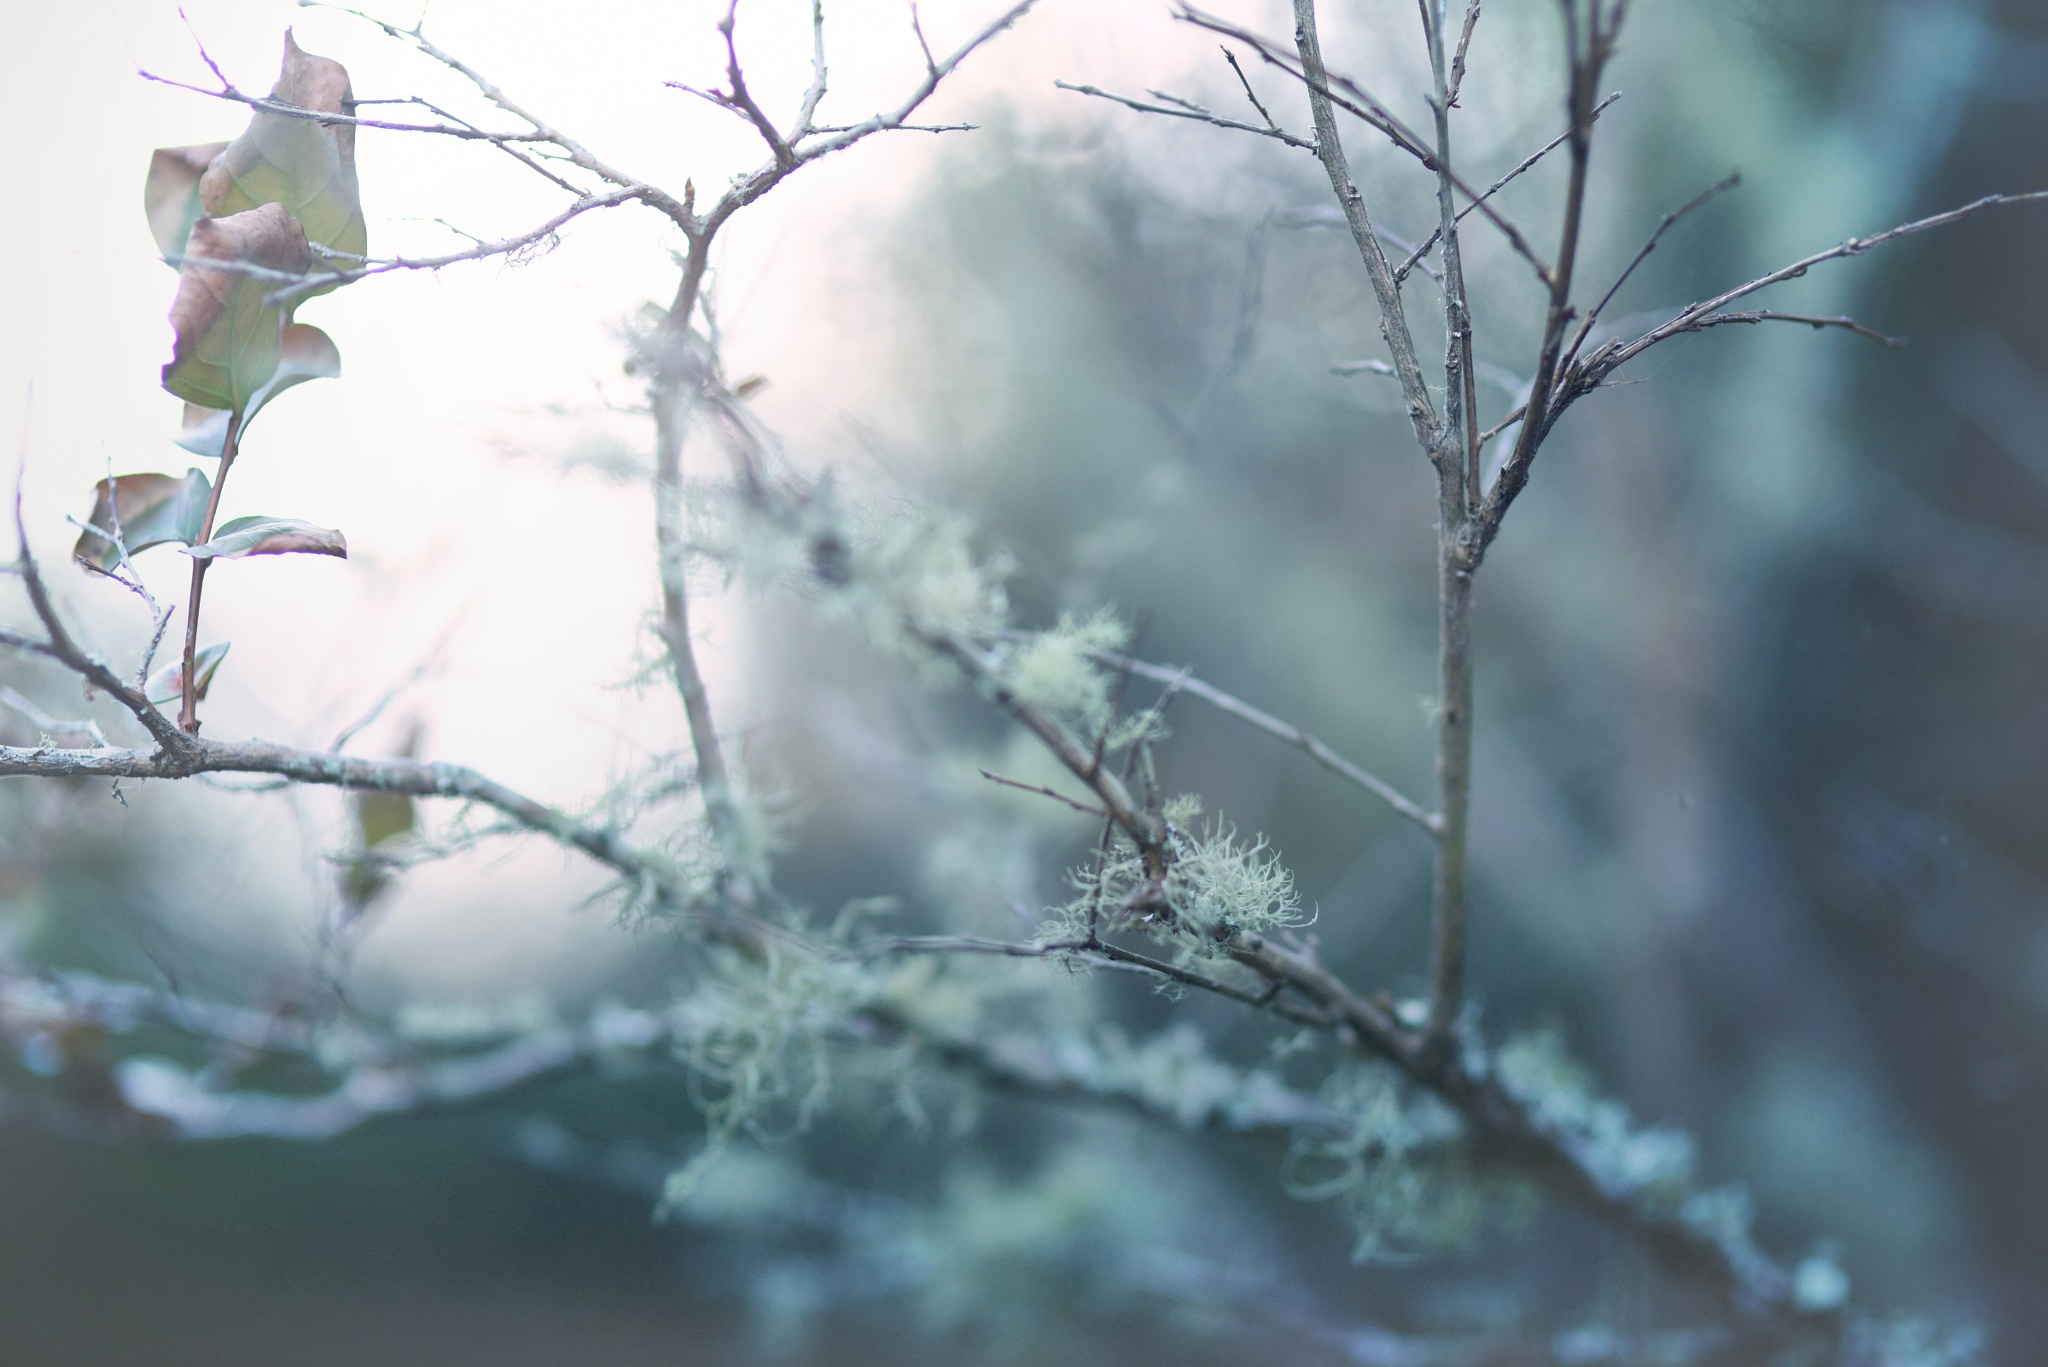 Winter's coming by Nikki Roloff